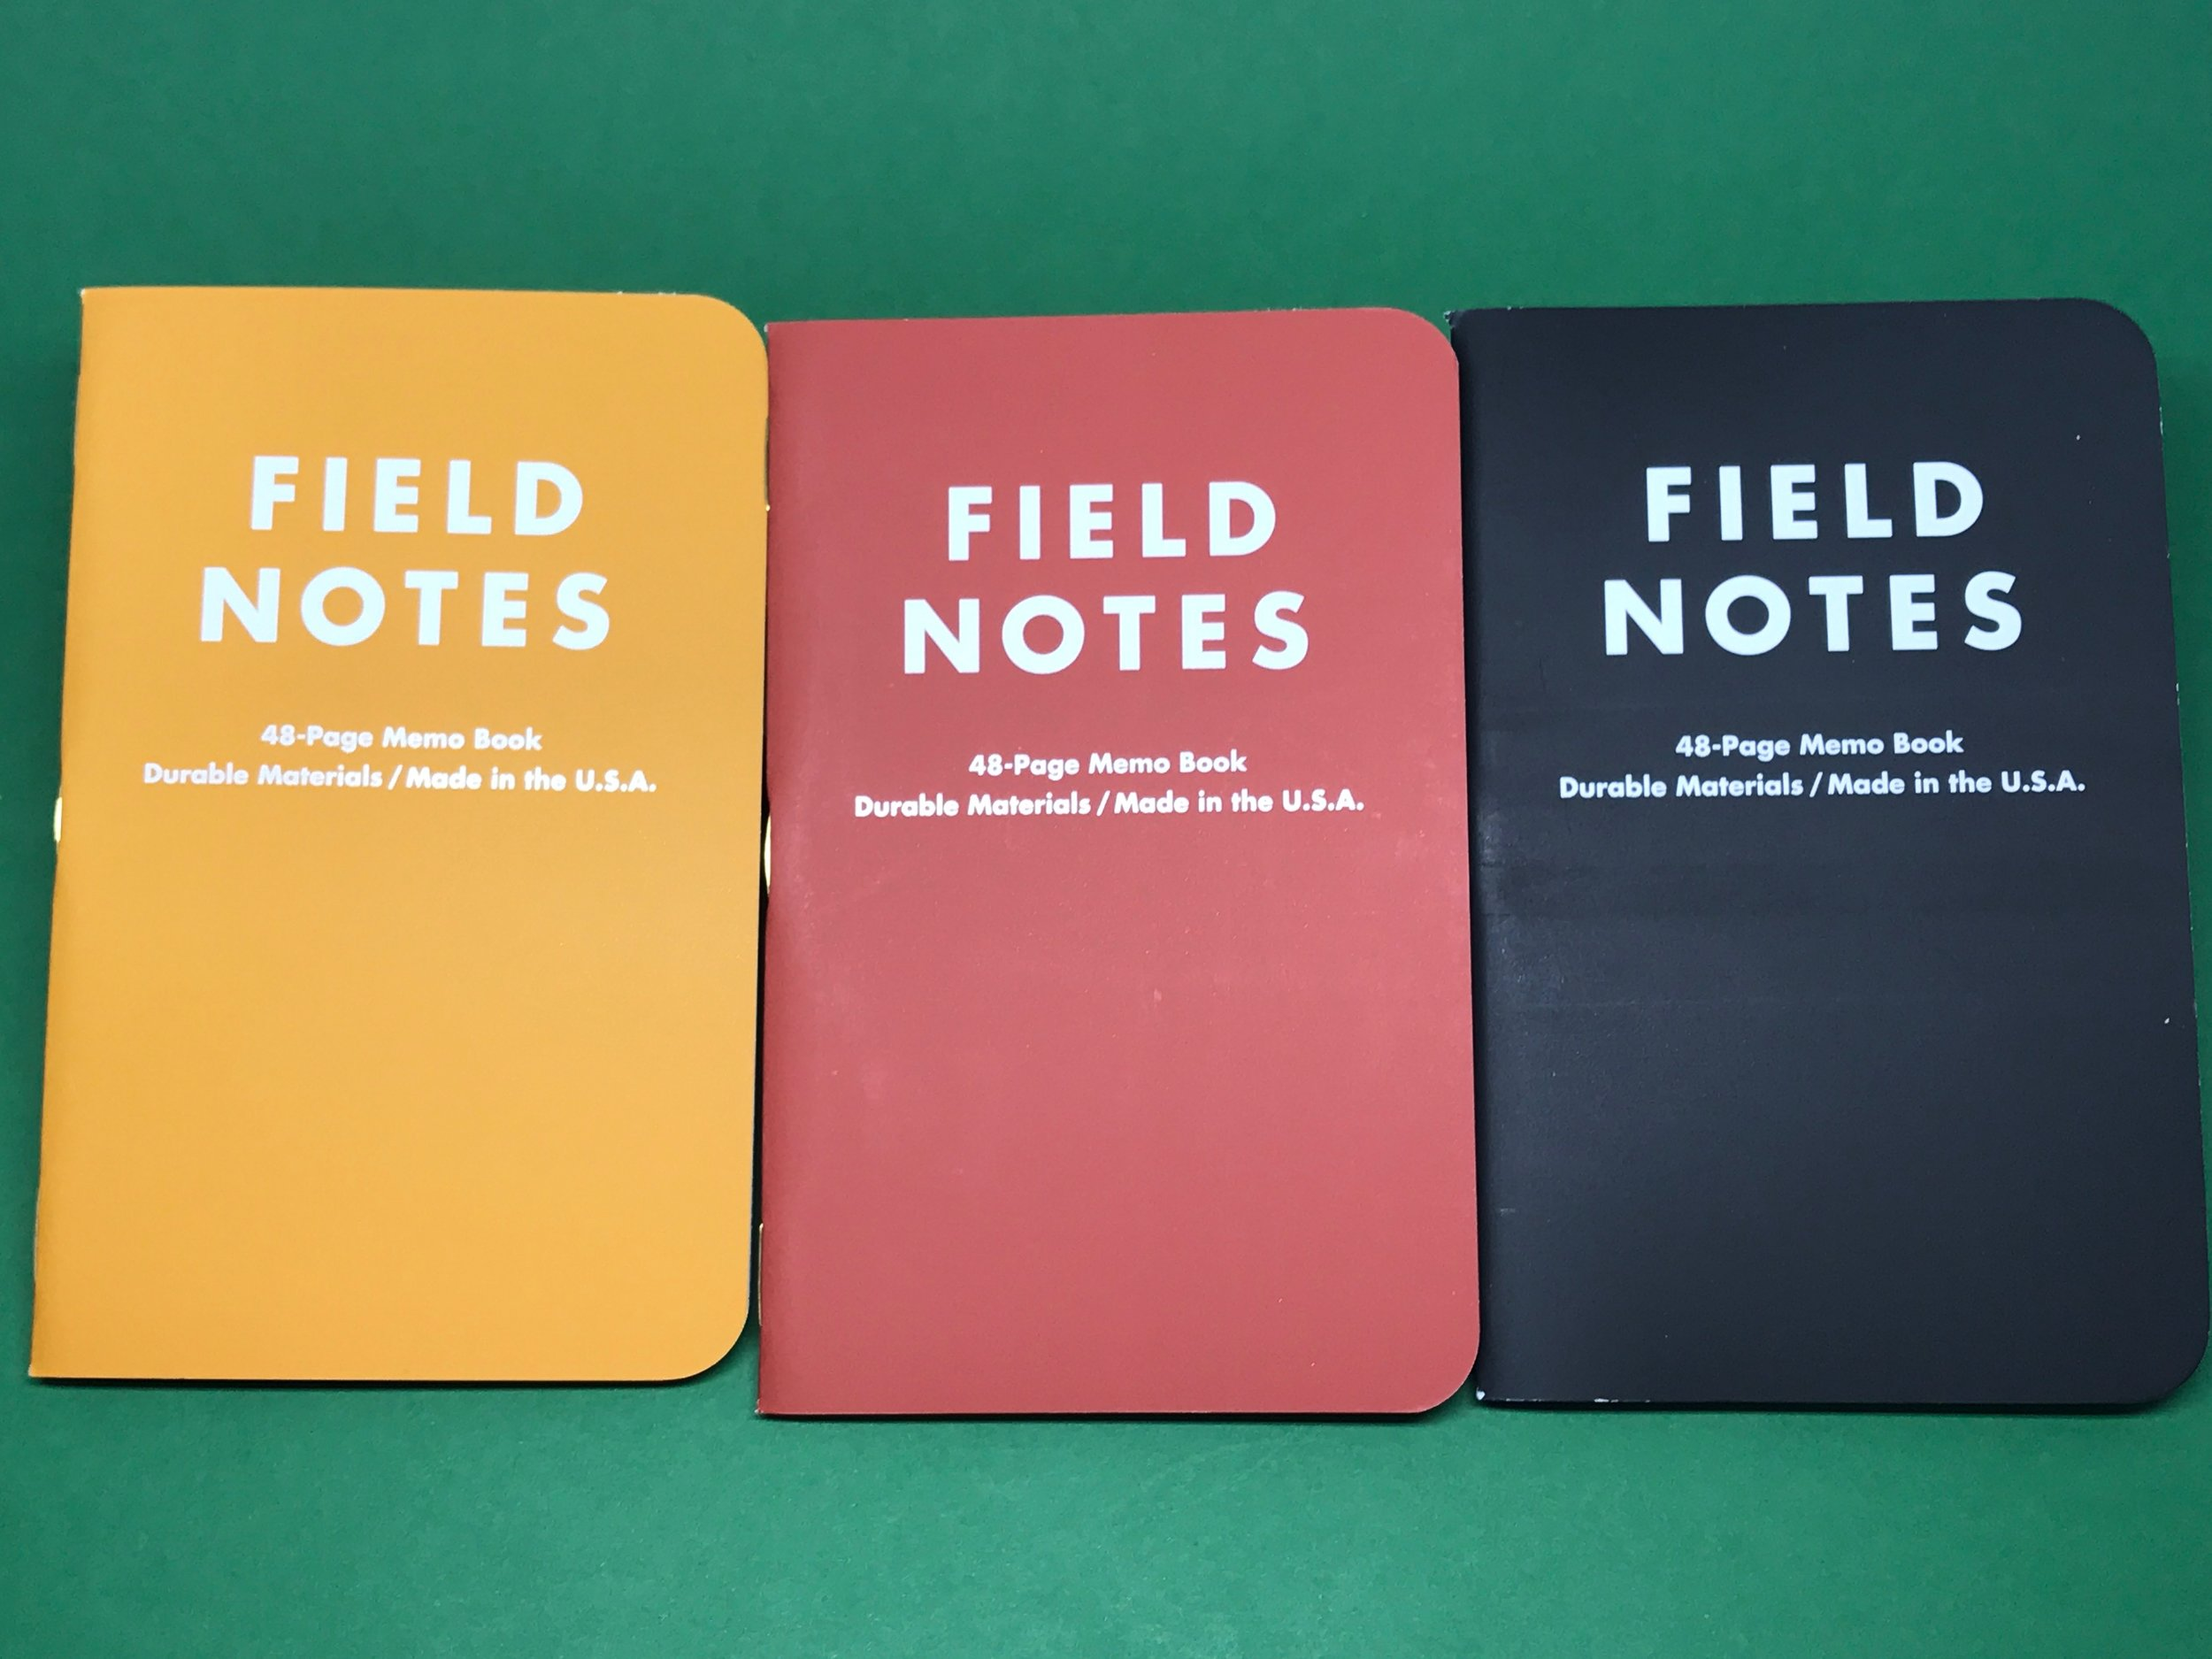 field-notes-drink-local-7.jpg